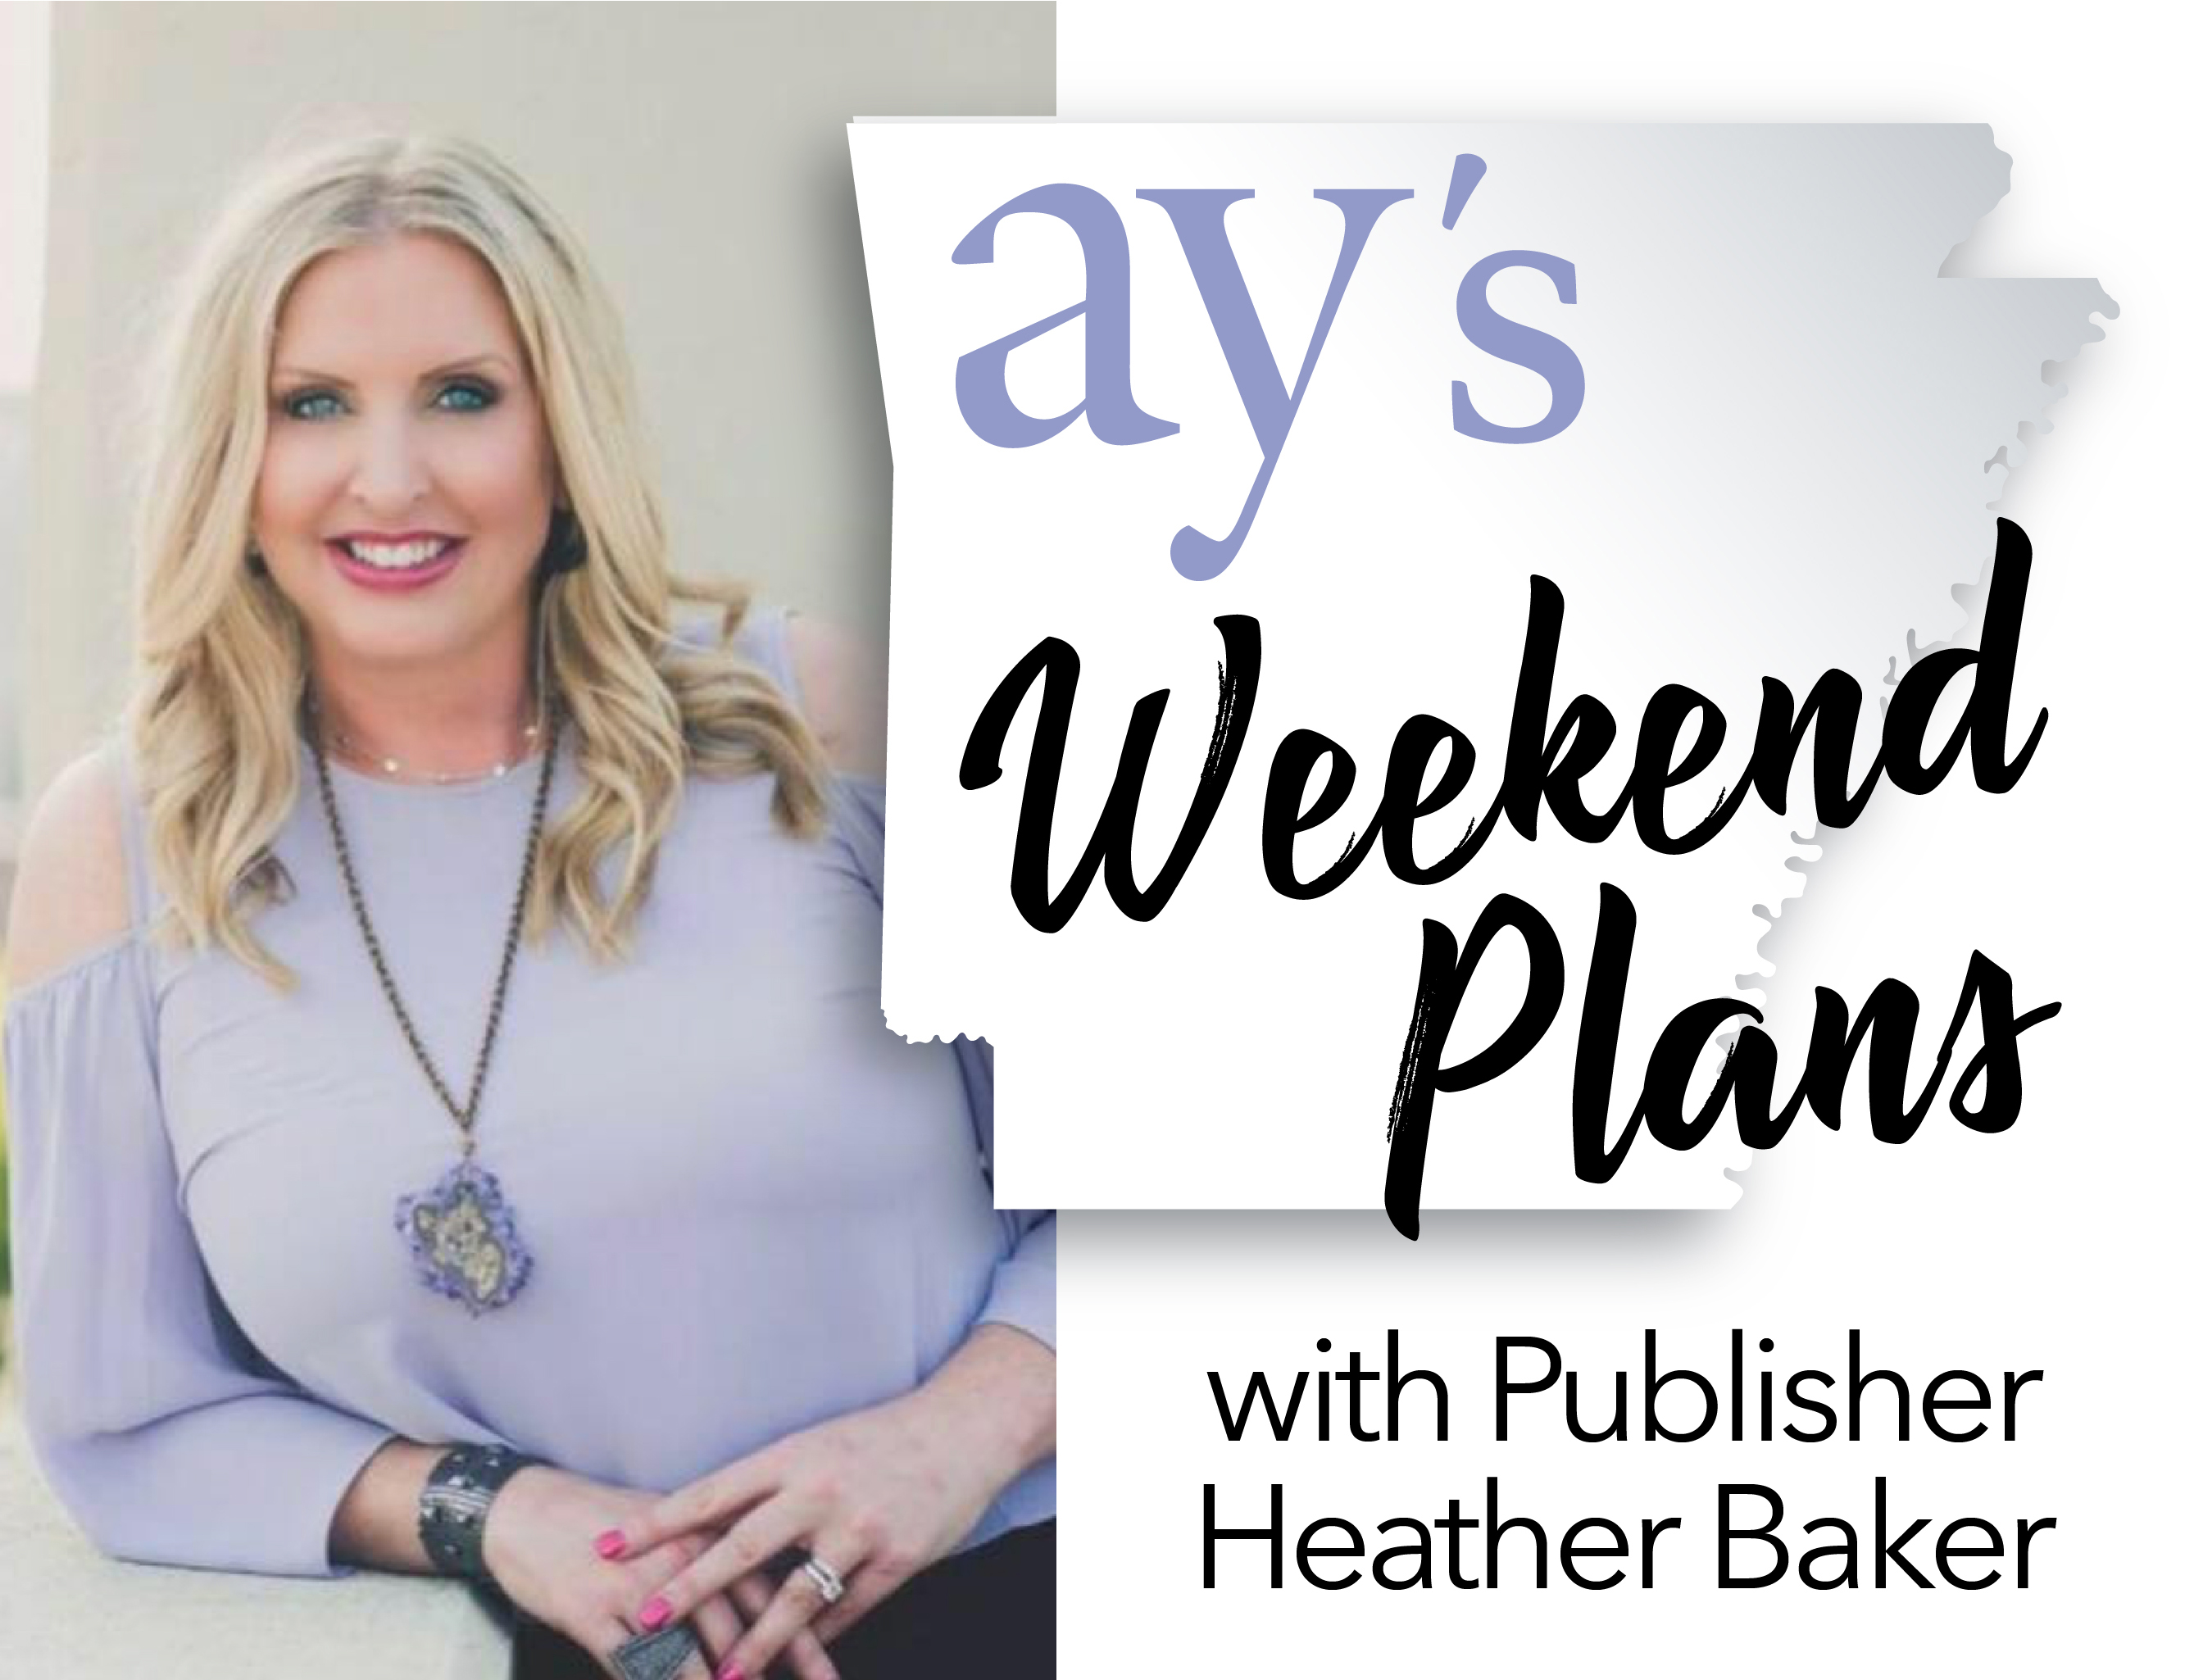 Heather Bakers Weekend Plans Cheese Dip Michael Cudlitz And More